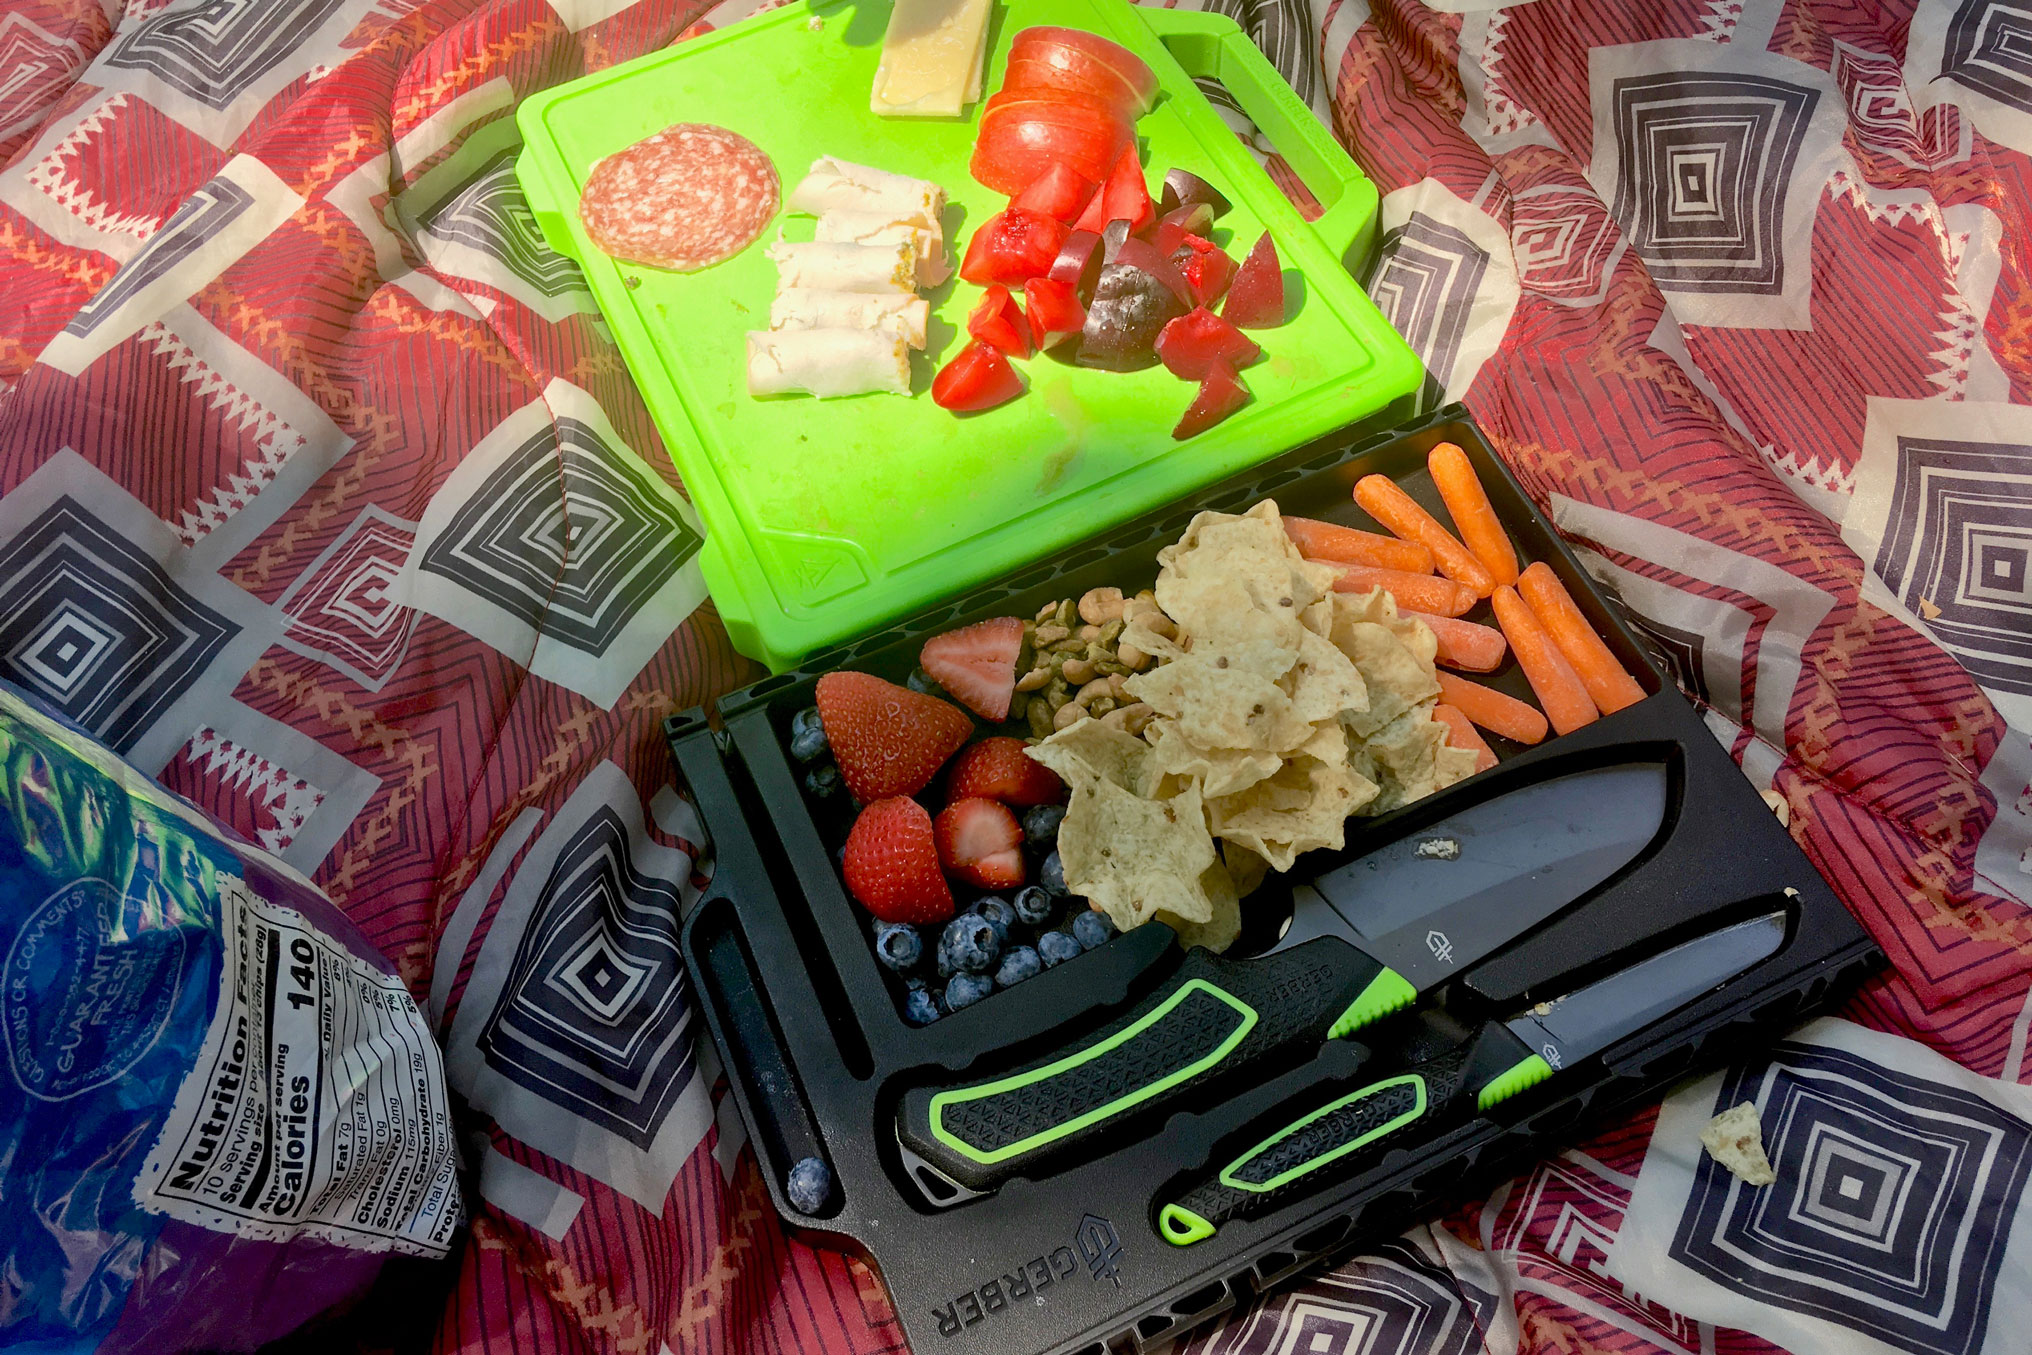 Picnic charcuterie with Gerber Freescape camp knife kit